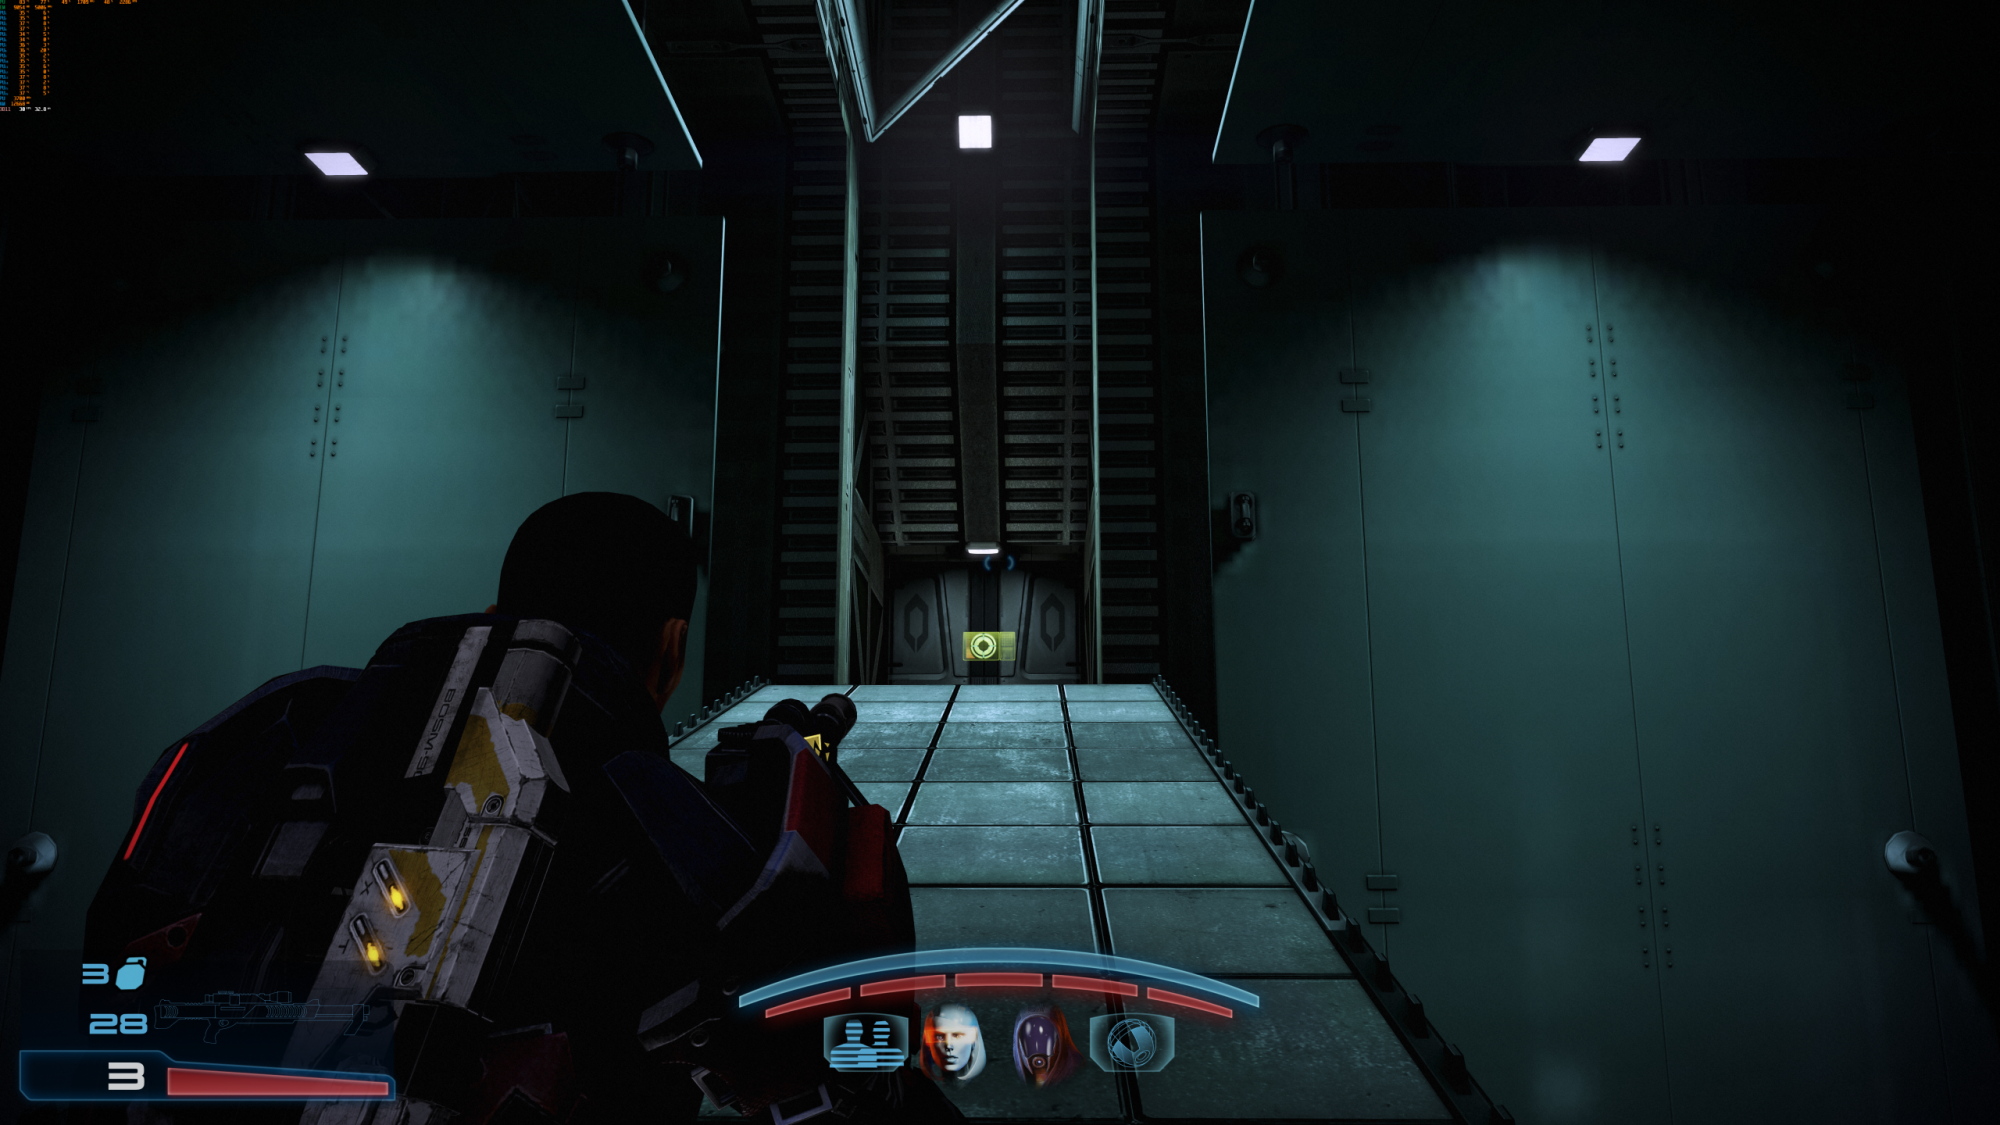 cstationlightmapping.png